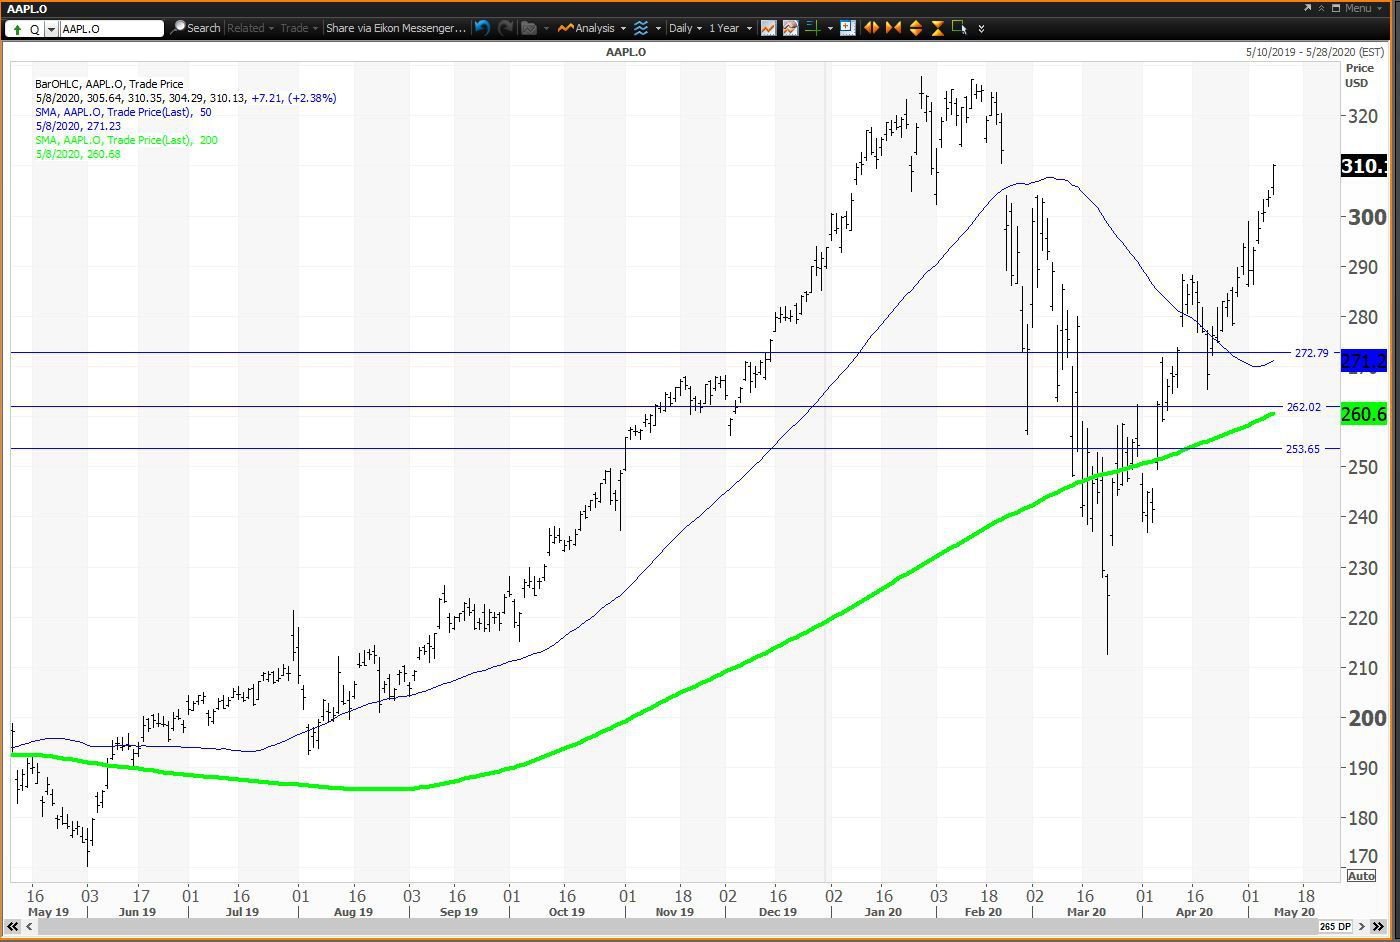 Daily chart showing the share price performance of Apple Inc. (AAPL)